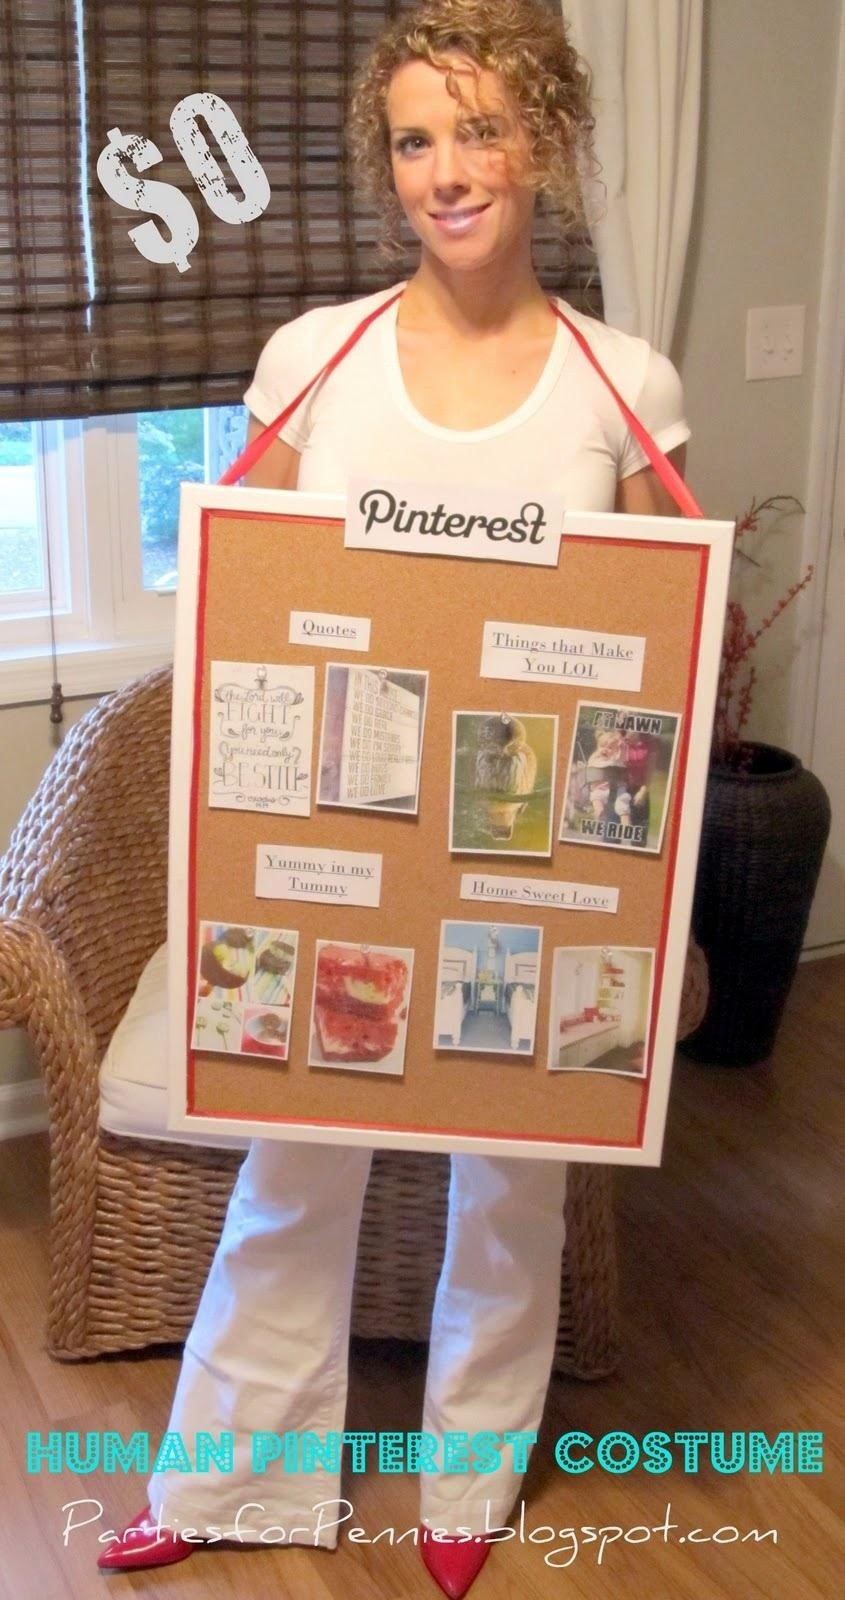 Best ideas about DIY Funny Costume . Save or Pin 10 Awesome Non y Halloween Costume Ideas for Women Now.